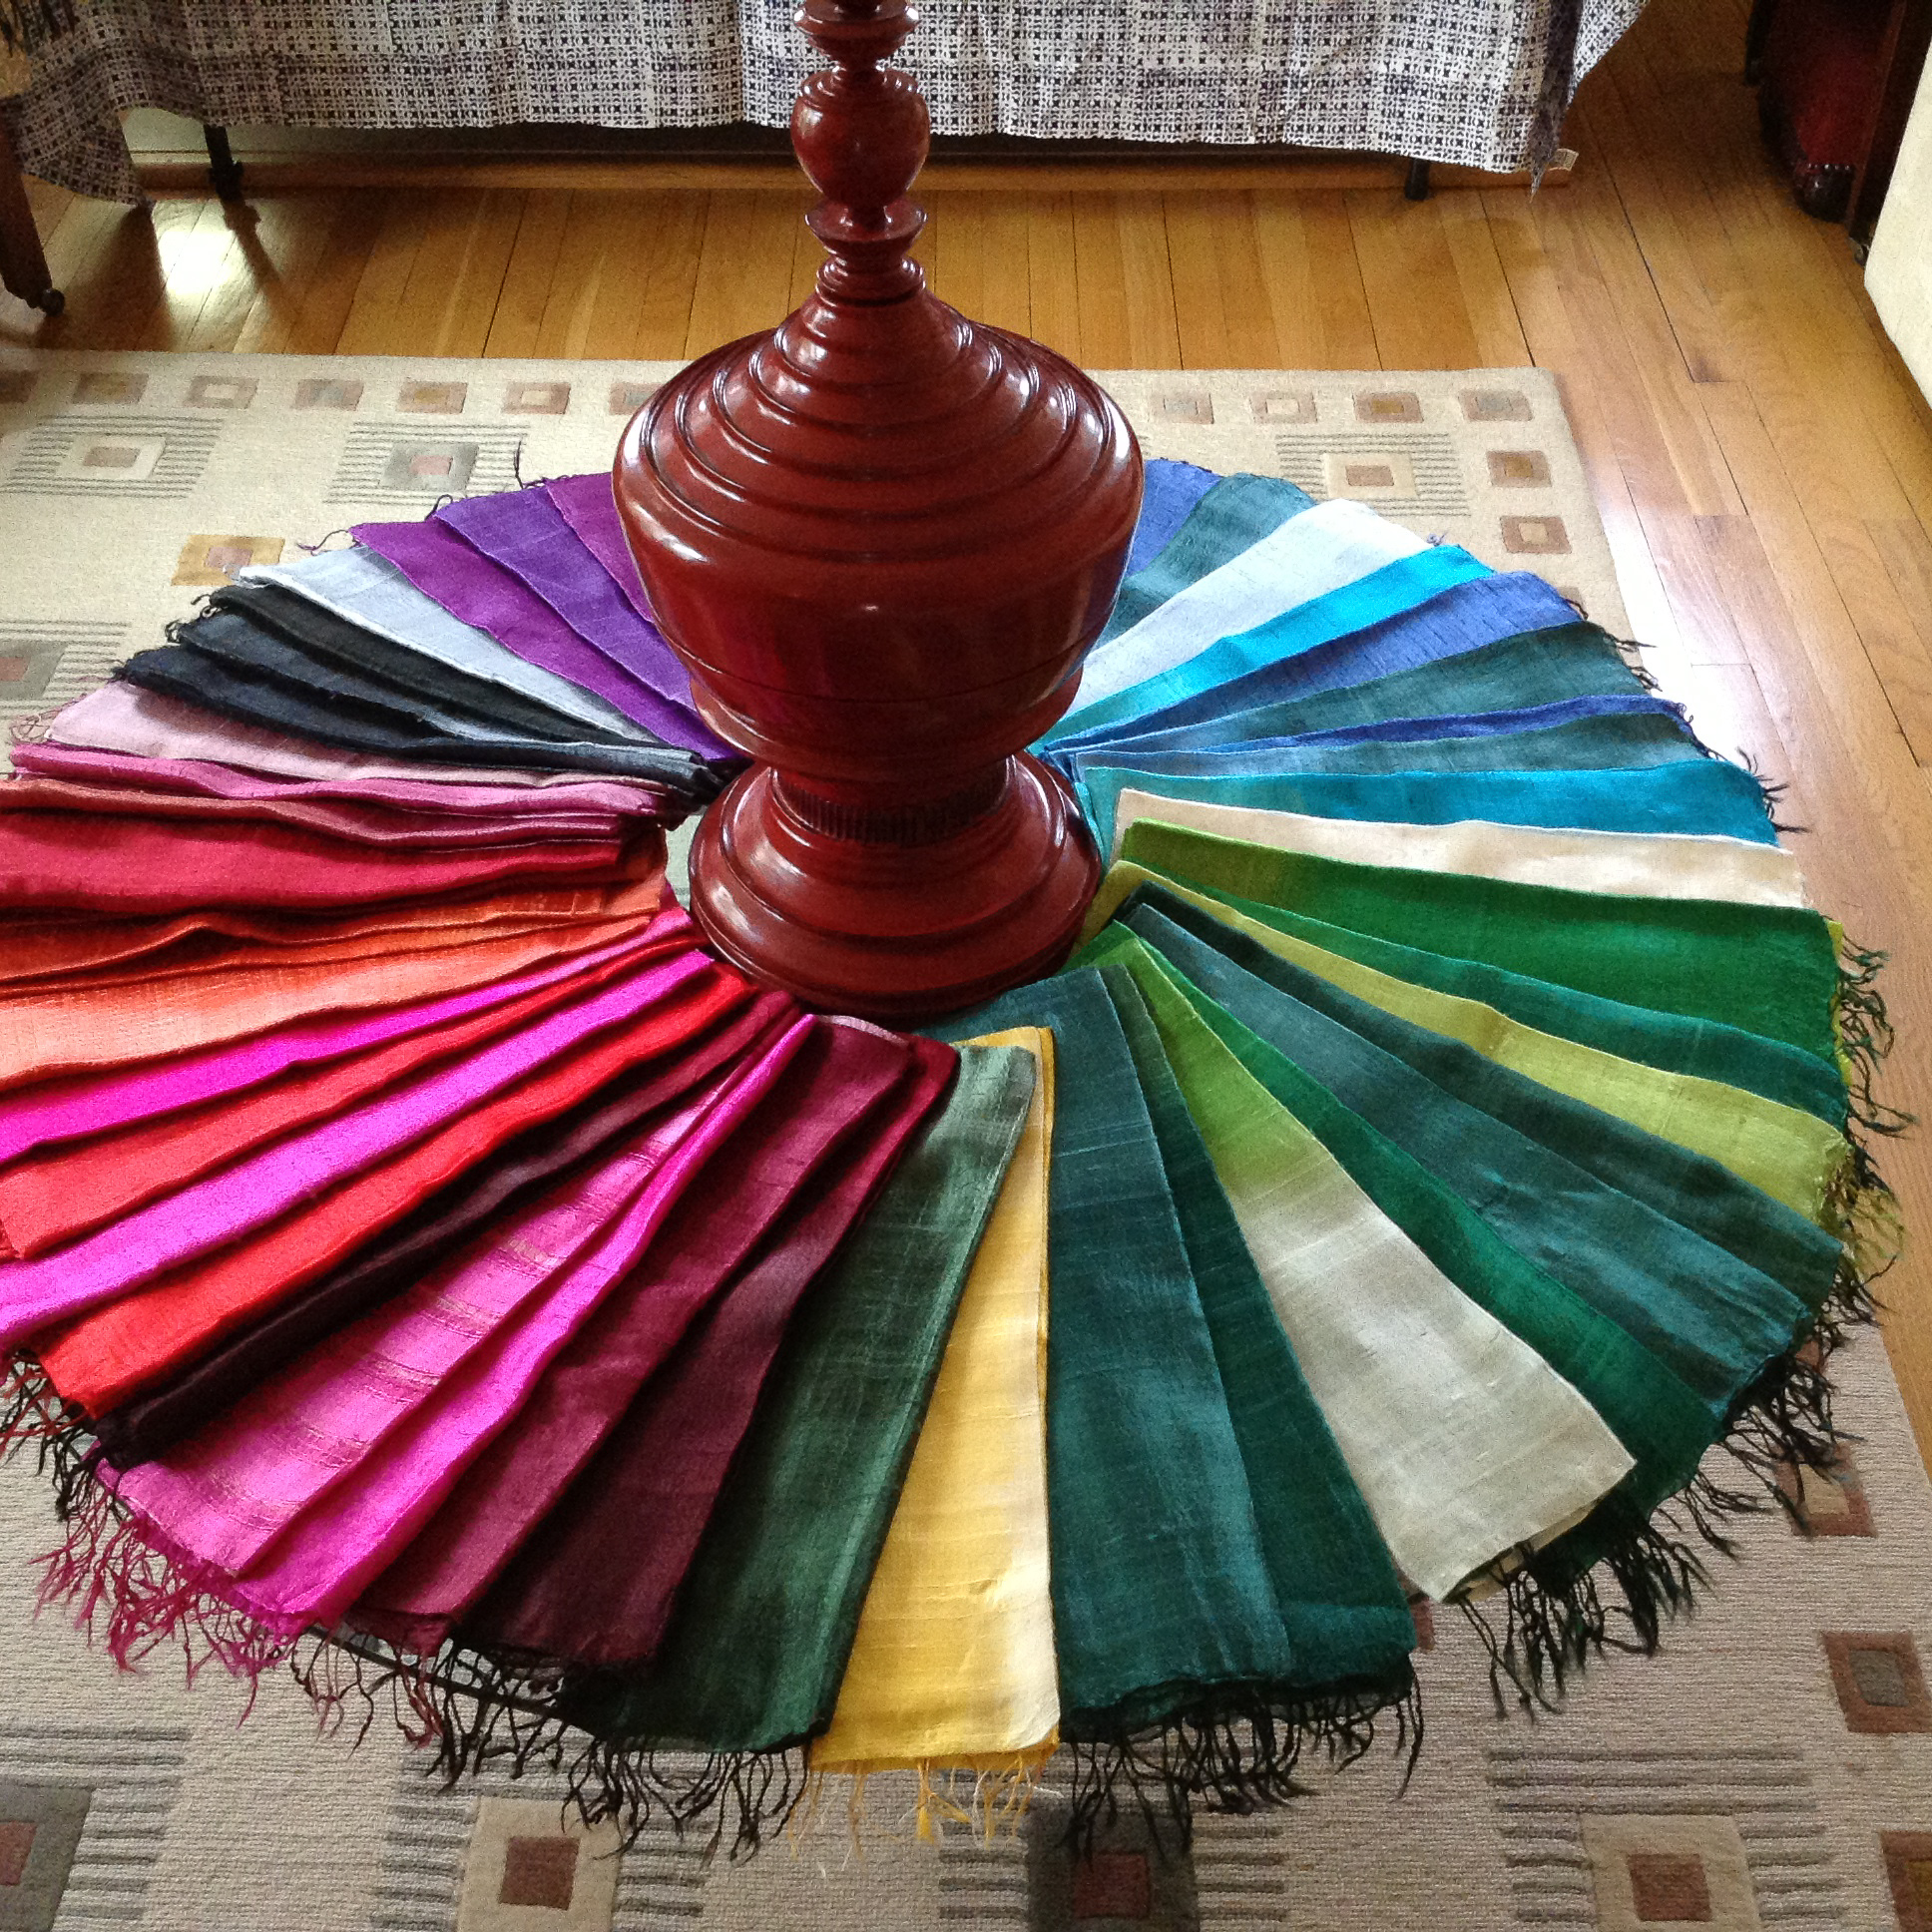 Fair trade products from artisans in Thailand, Burma and India, including silk and cashmere scarves, Thai clothing, and silver and other jewelry.